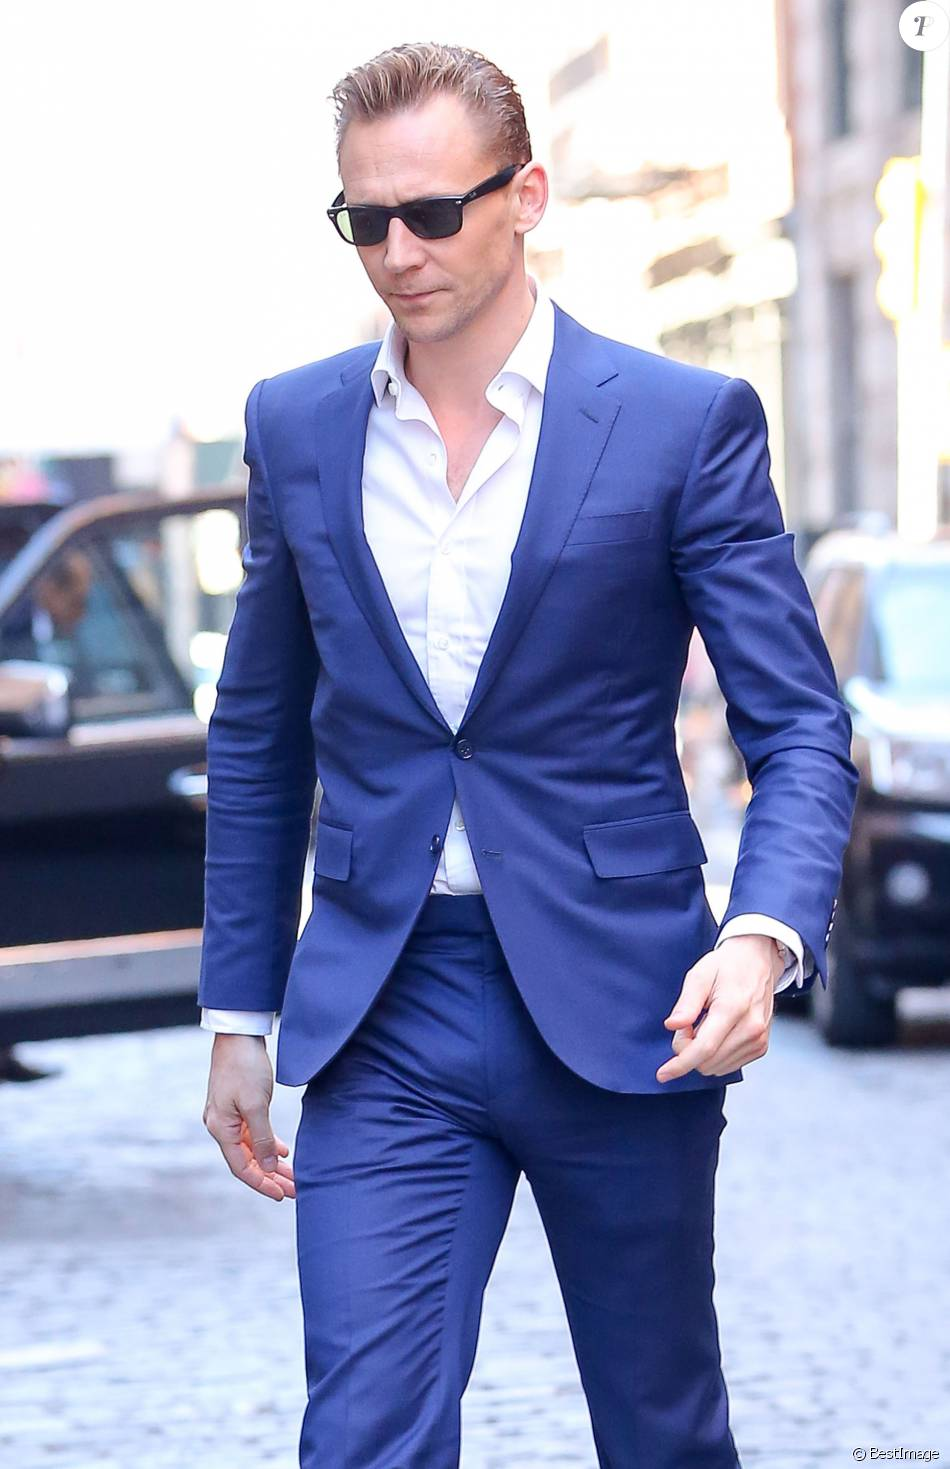 Famous Eye Candy: Tom Hiddleston Bulging Out in the Streets